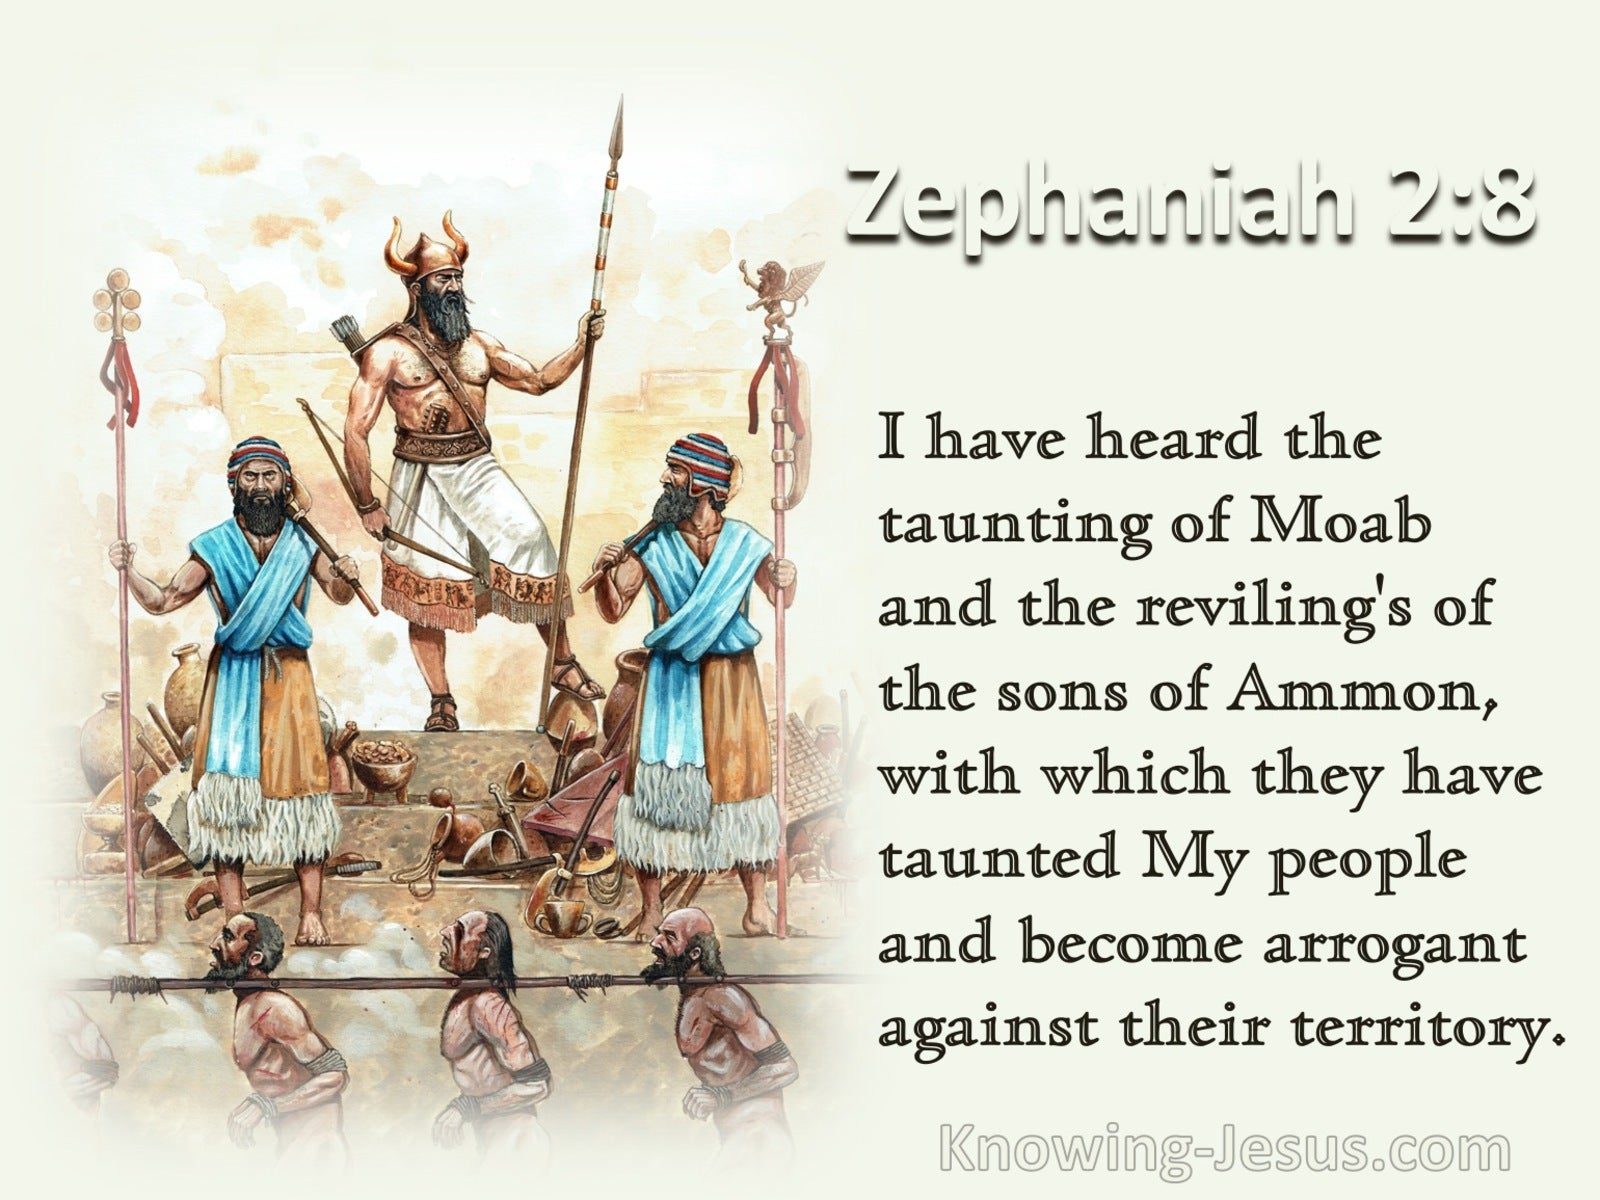 Zephaniah 2:8 The Taunting Of Moab And The Revilings Of The Sons Of Ammon (cream)